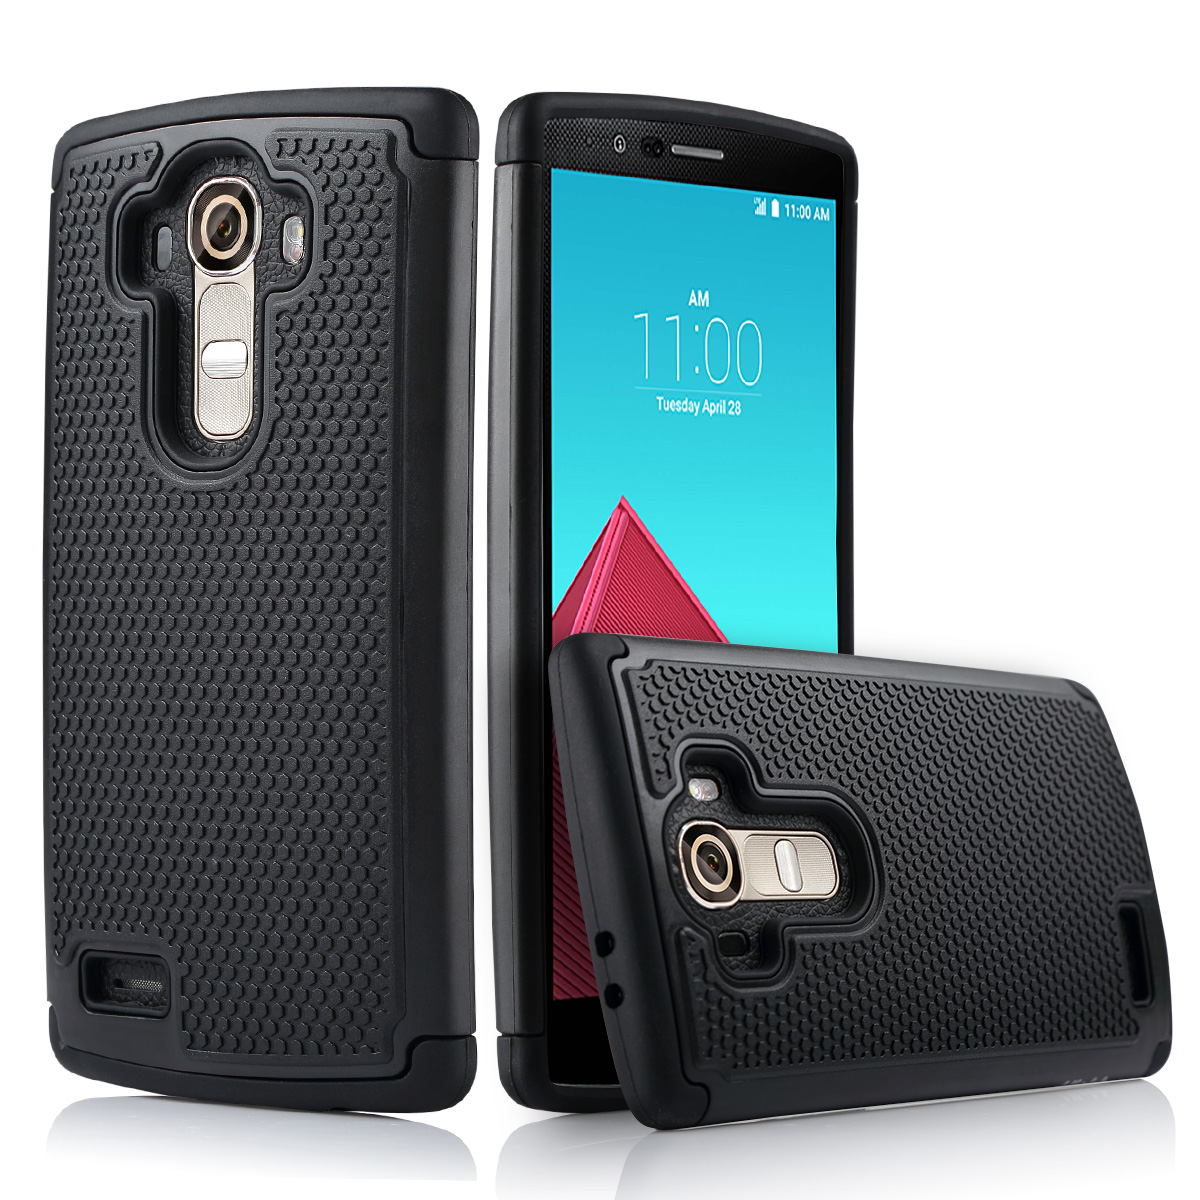 LG G4 Case, ULAK LG G4 Case Shock-Absorption Hybrid Dual Layer [Rigid Plastic + Soft Silicone] Rugged Rubber Matte Hard Protective Case Cover for LG G4